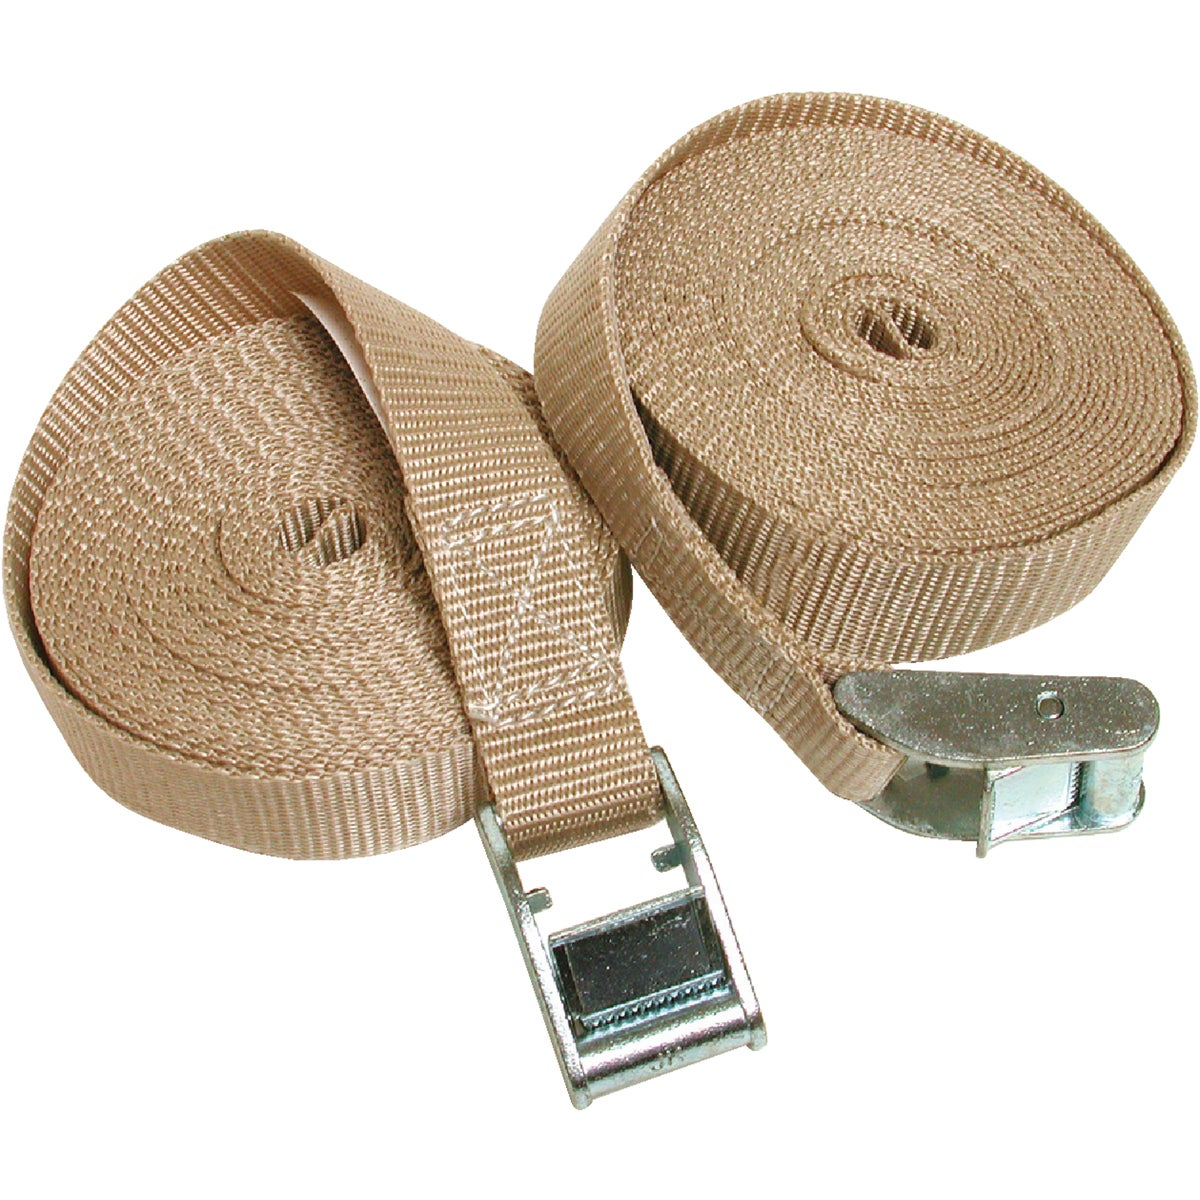 EZ-STRAP COVER TIE DOWN - 8237 by Dial Manufacturing